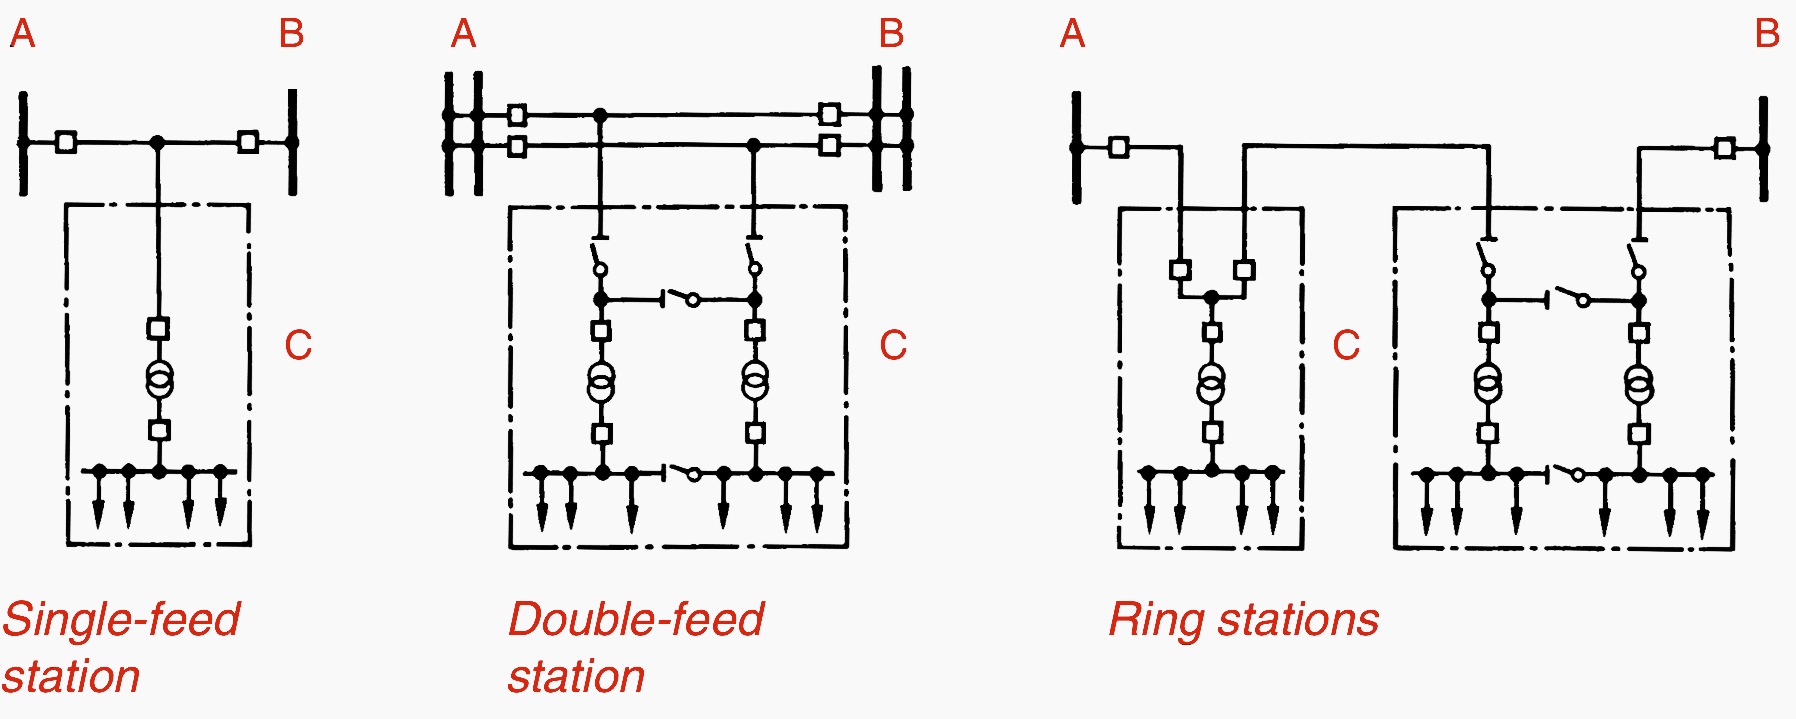 hight resolution of circuit configurations single line diagrams for hv and mv switchgear wiring diagram pdf switchgear wiring diagram